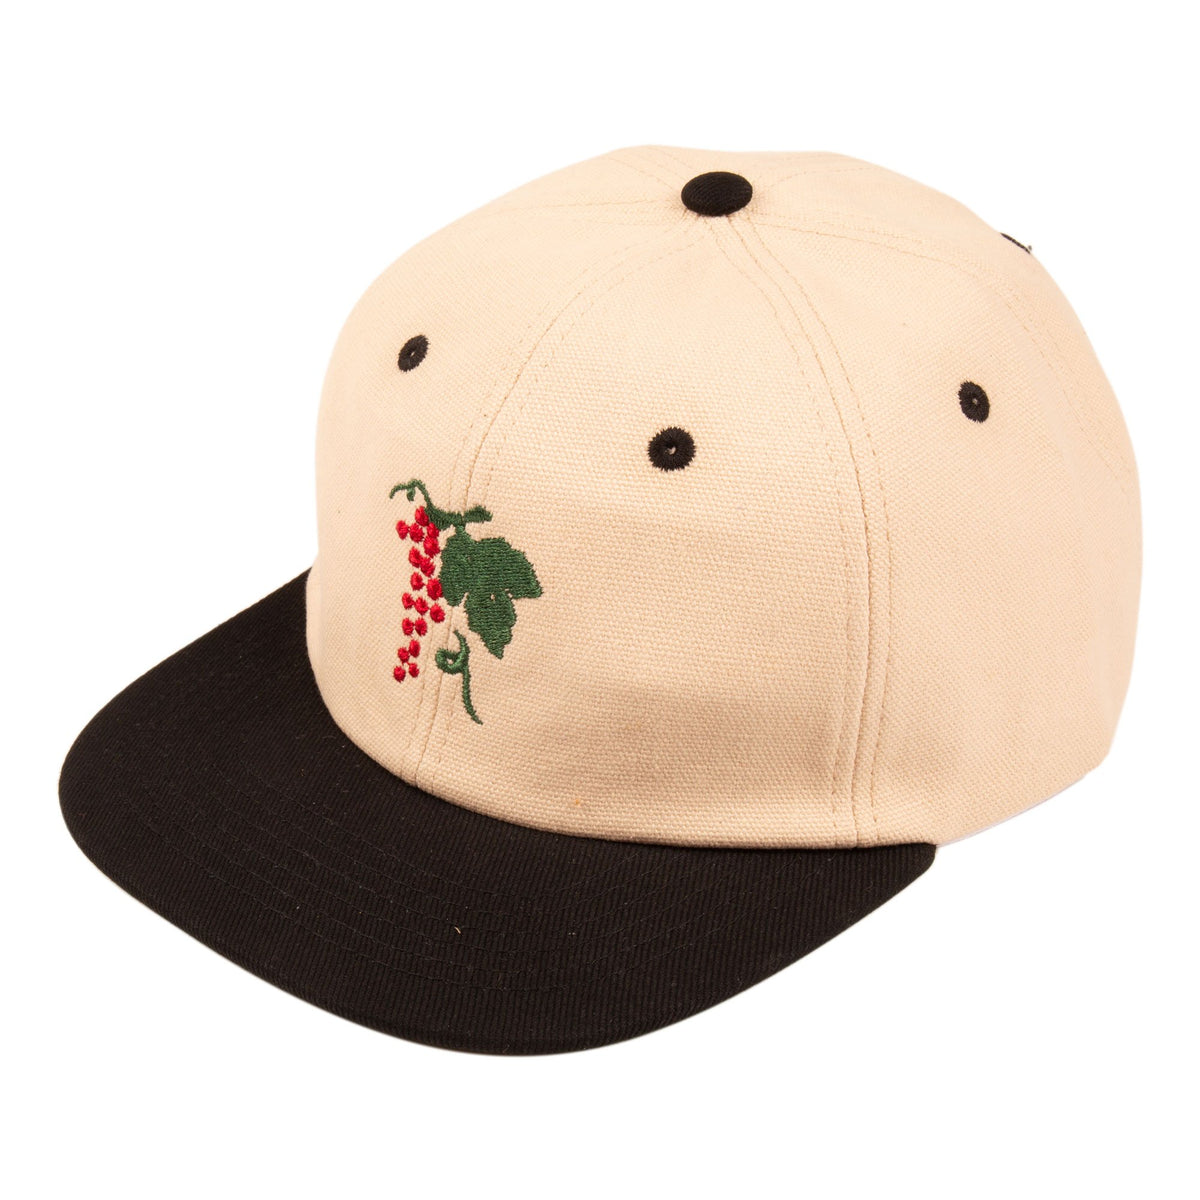 Passport Life of Leisure 6 Panel Cap